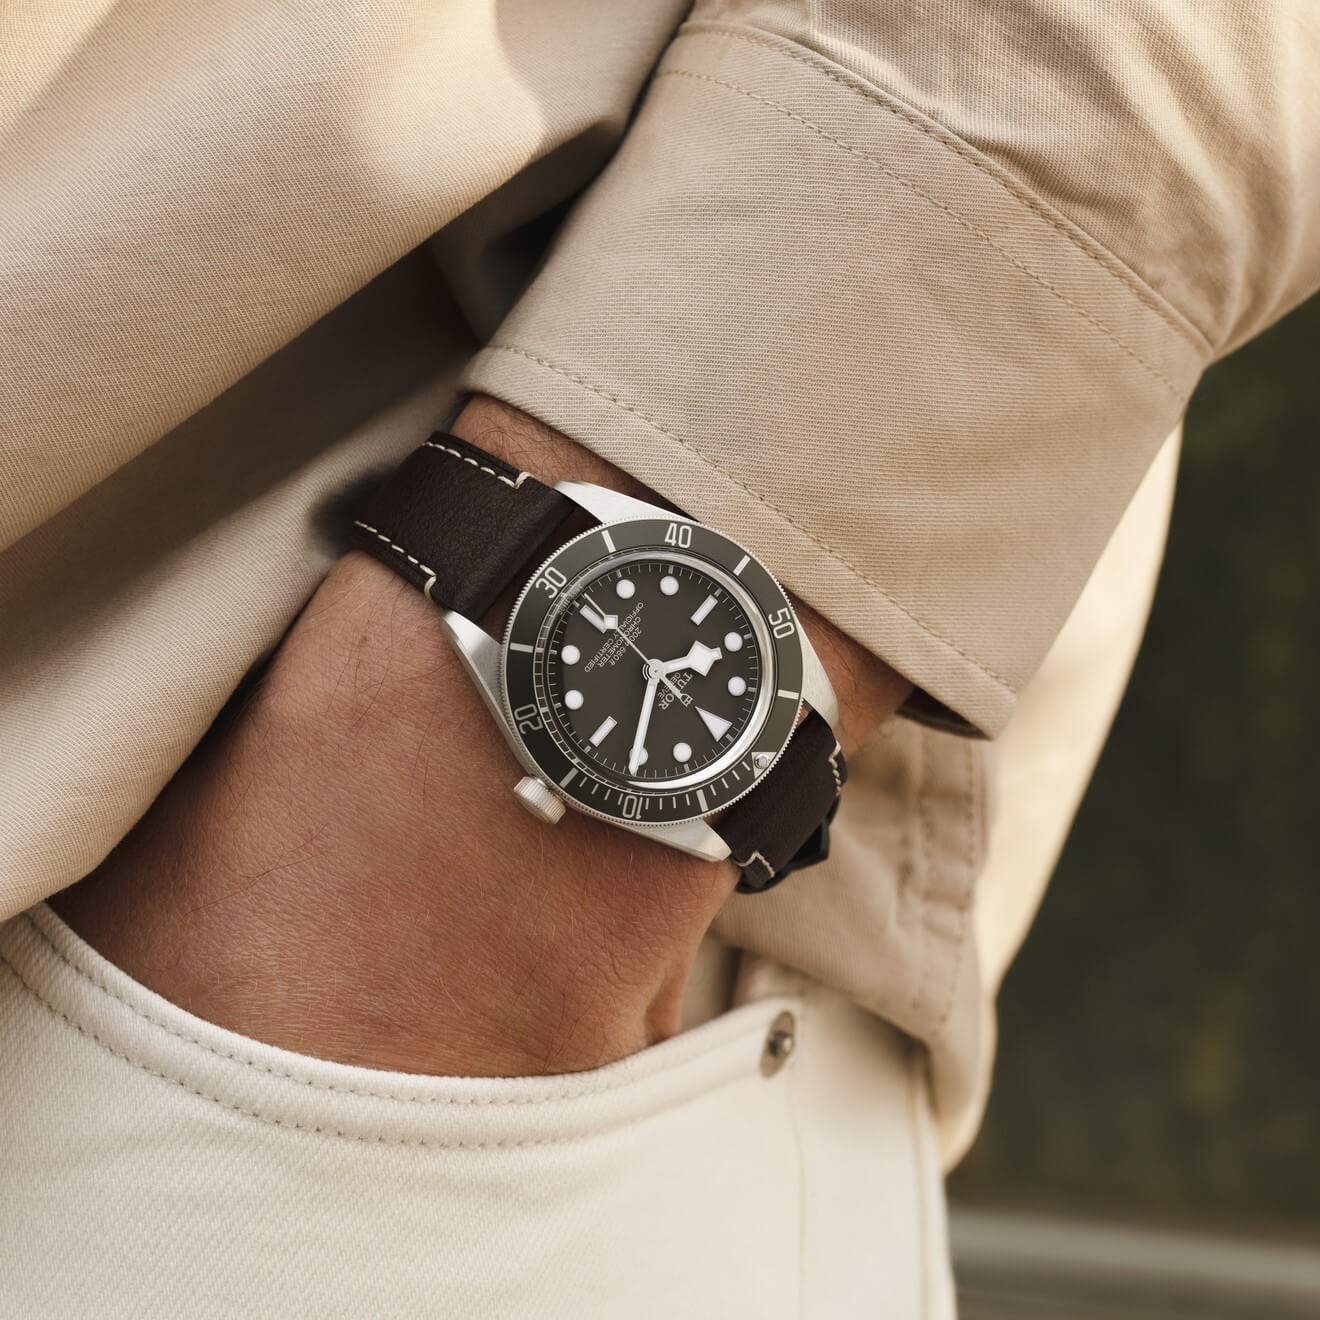 Tudor Black Bay Fifty-Eight 925 Ref. 79010SG-0001 - Lifestyle - Mamic 1970